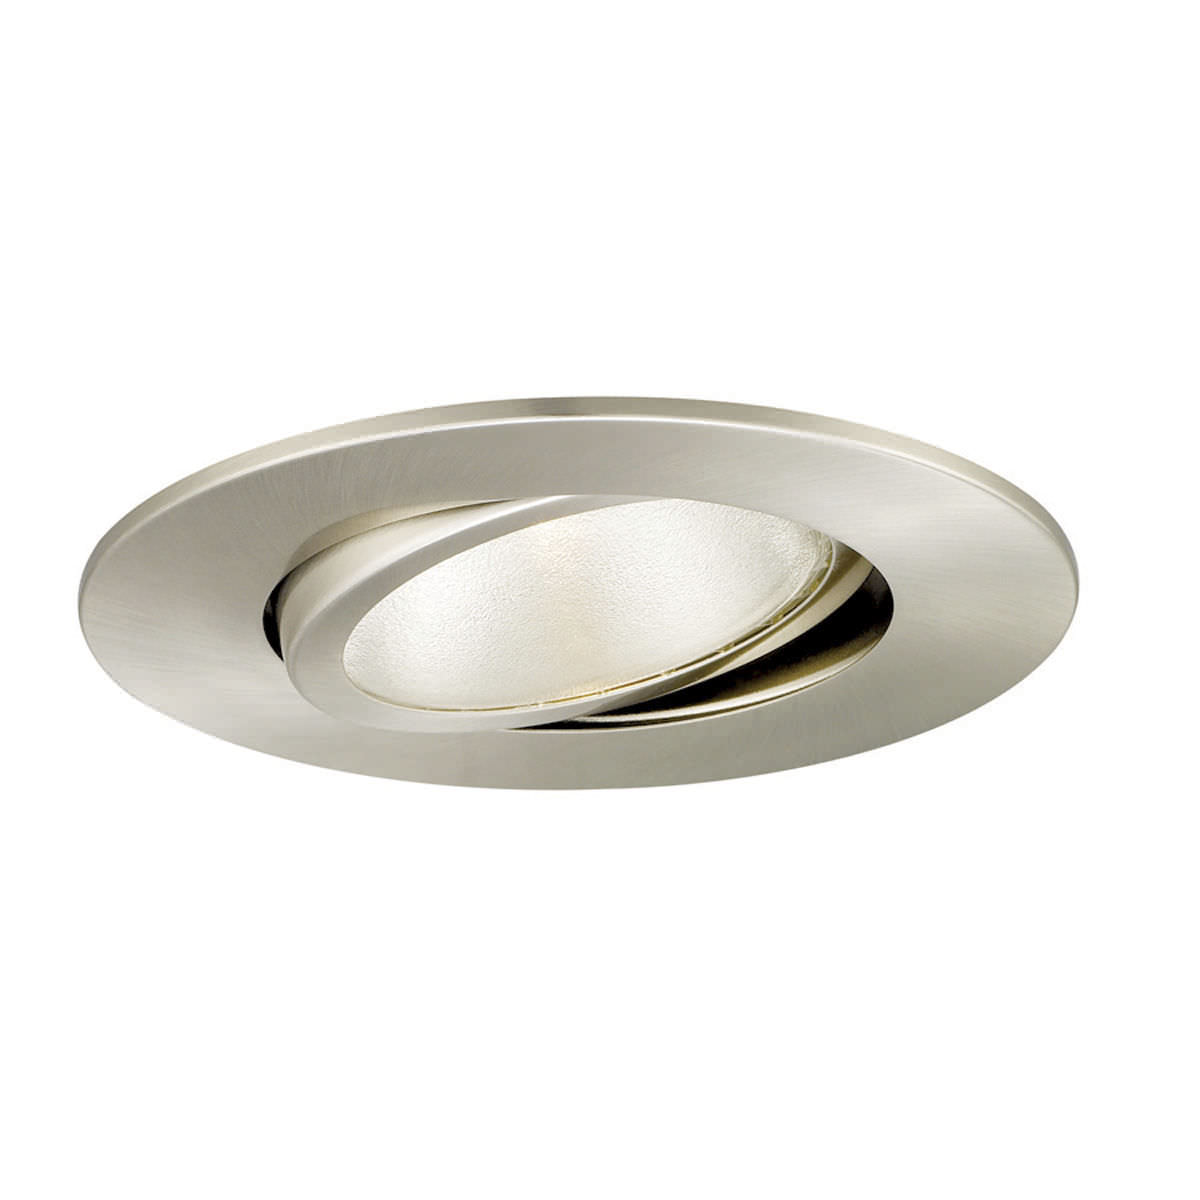 Recessed ceiling spotlight indoor halogen round r 532 recessed ceiling spotlight indoor halogen round r 532 aloadofball Image collections